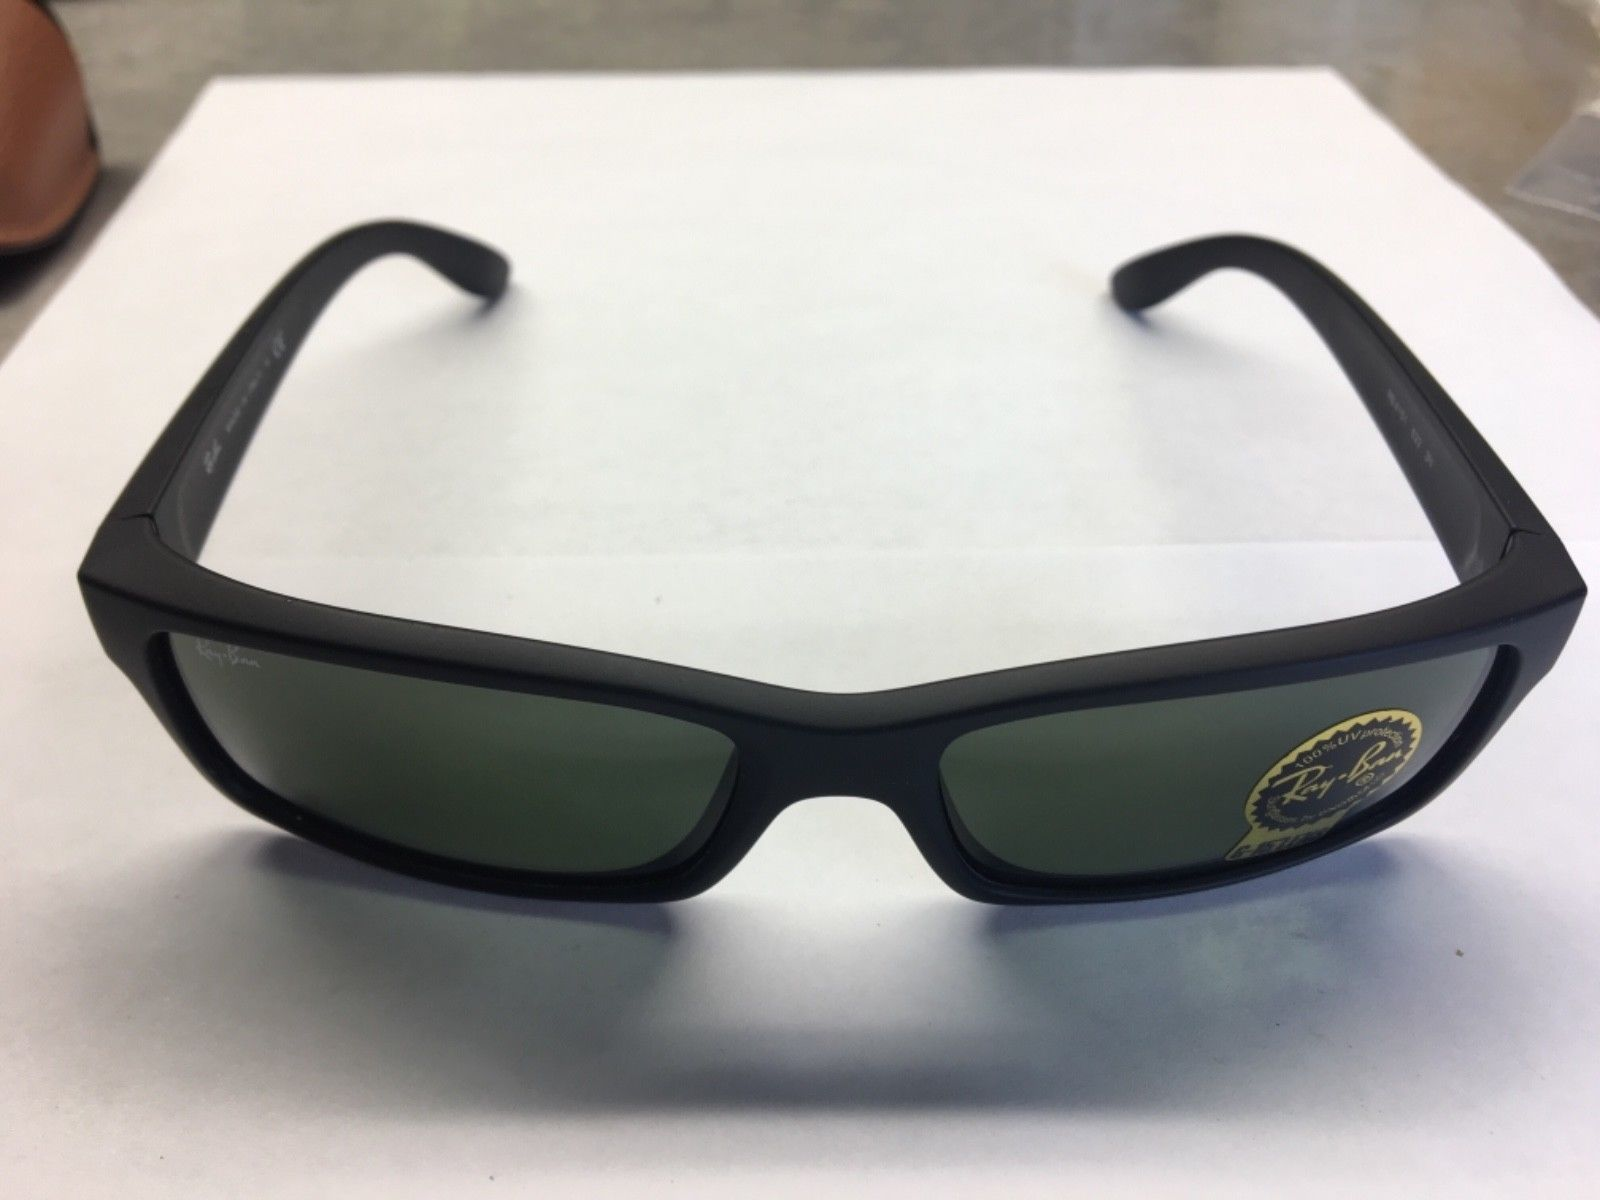 Ray Ban 4151 622 3N Matte Black Rubberized Sunglasses - NEW UNUSED With  Tags (eBay Link) 71364c612309